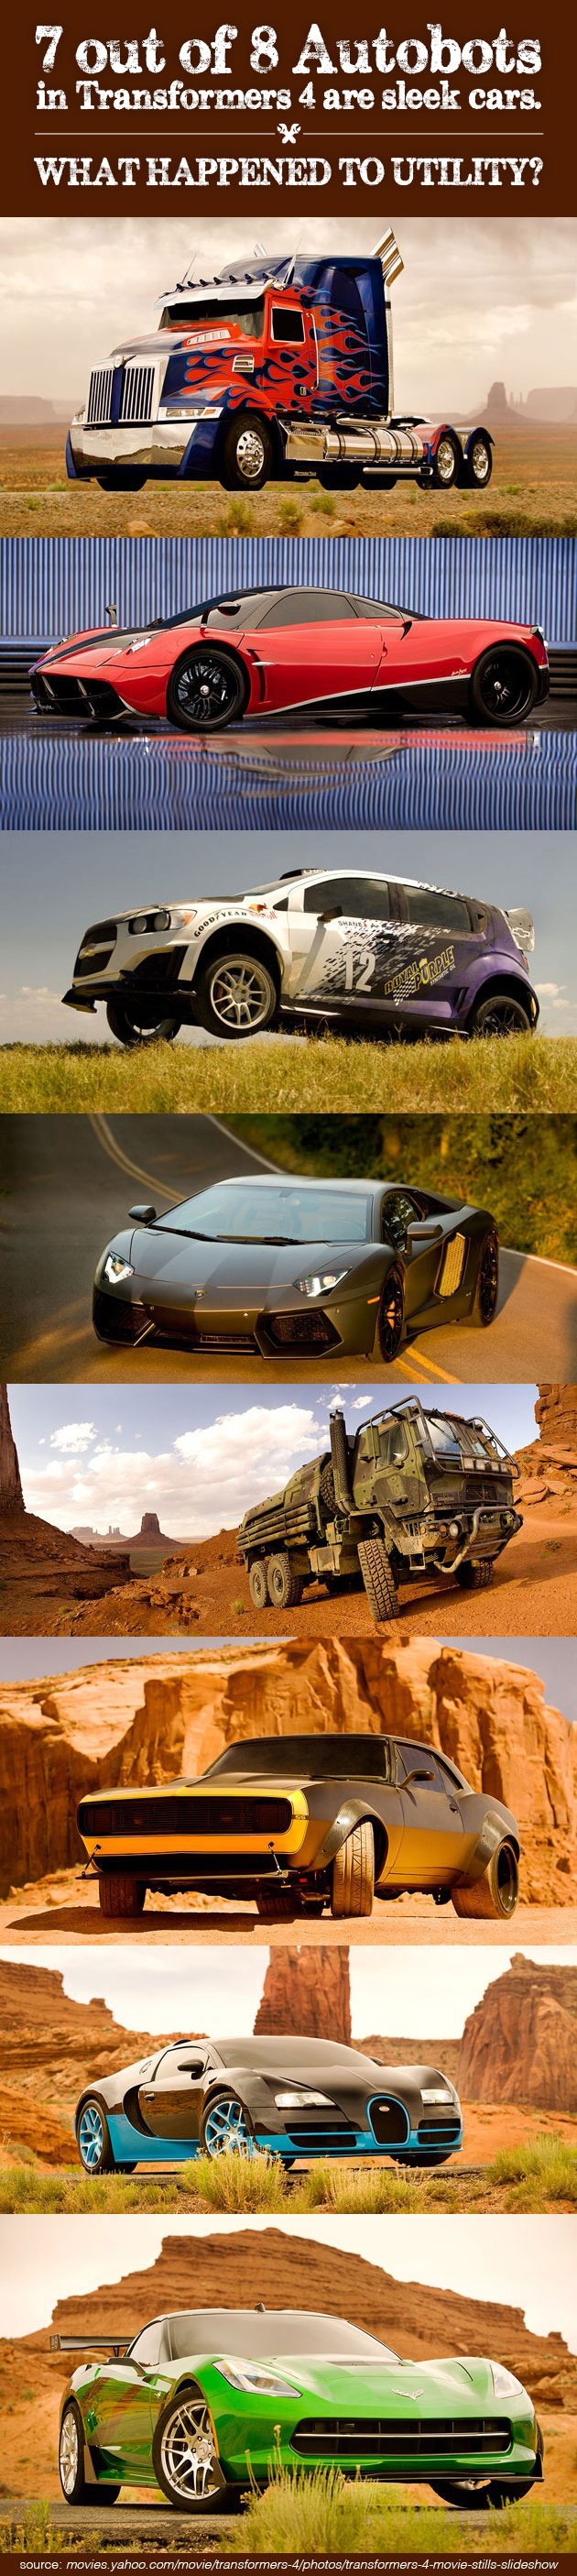 7 out of 8 Autobots in Transformers 4 are sleek cars. What happened to utility?